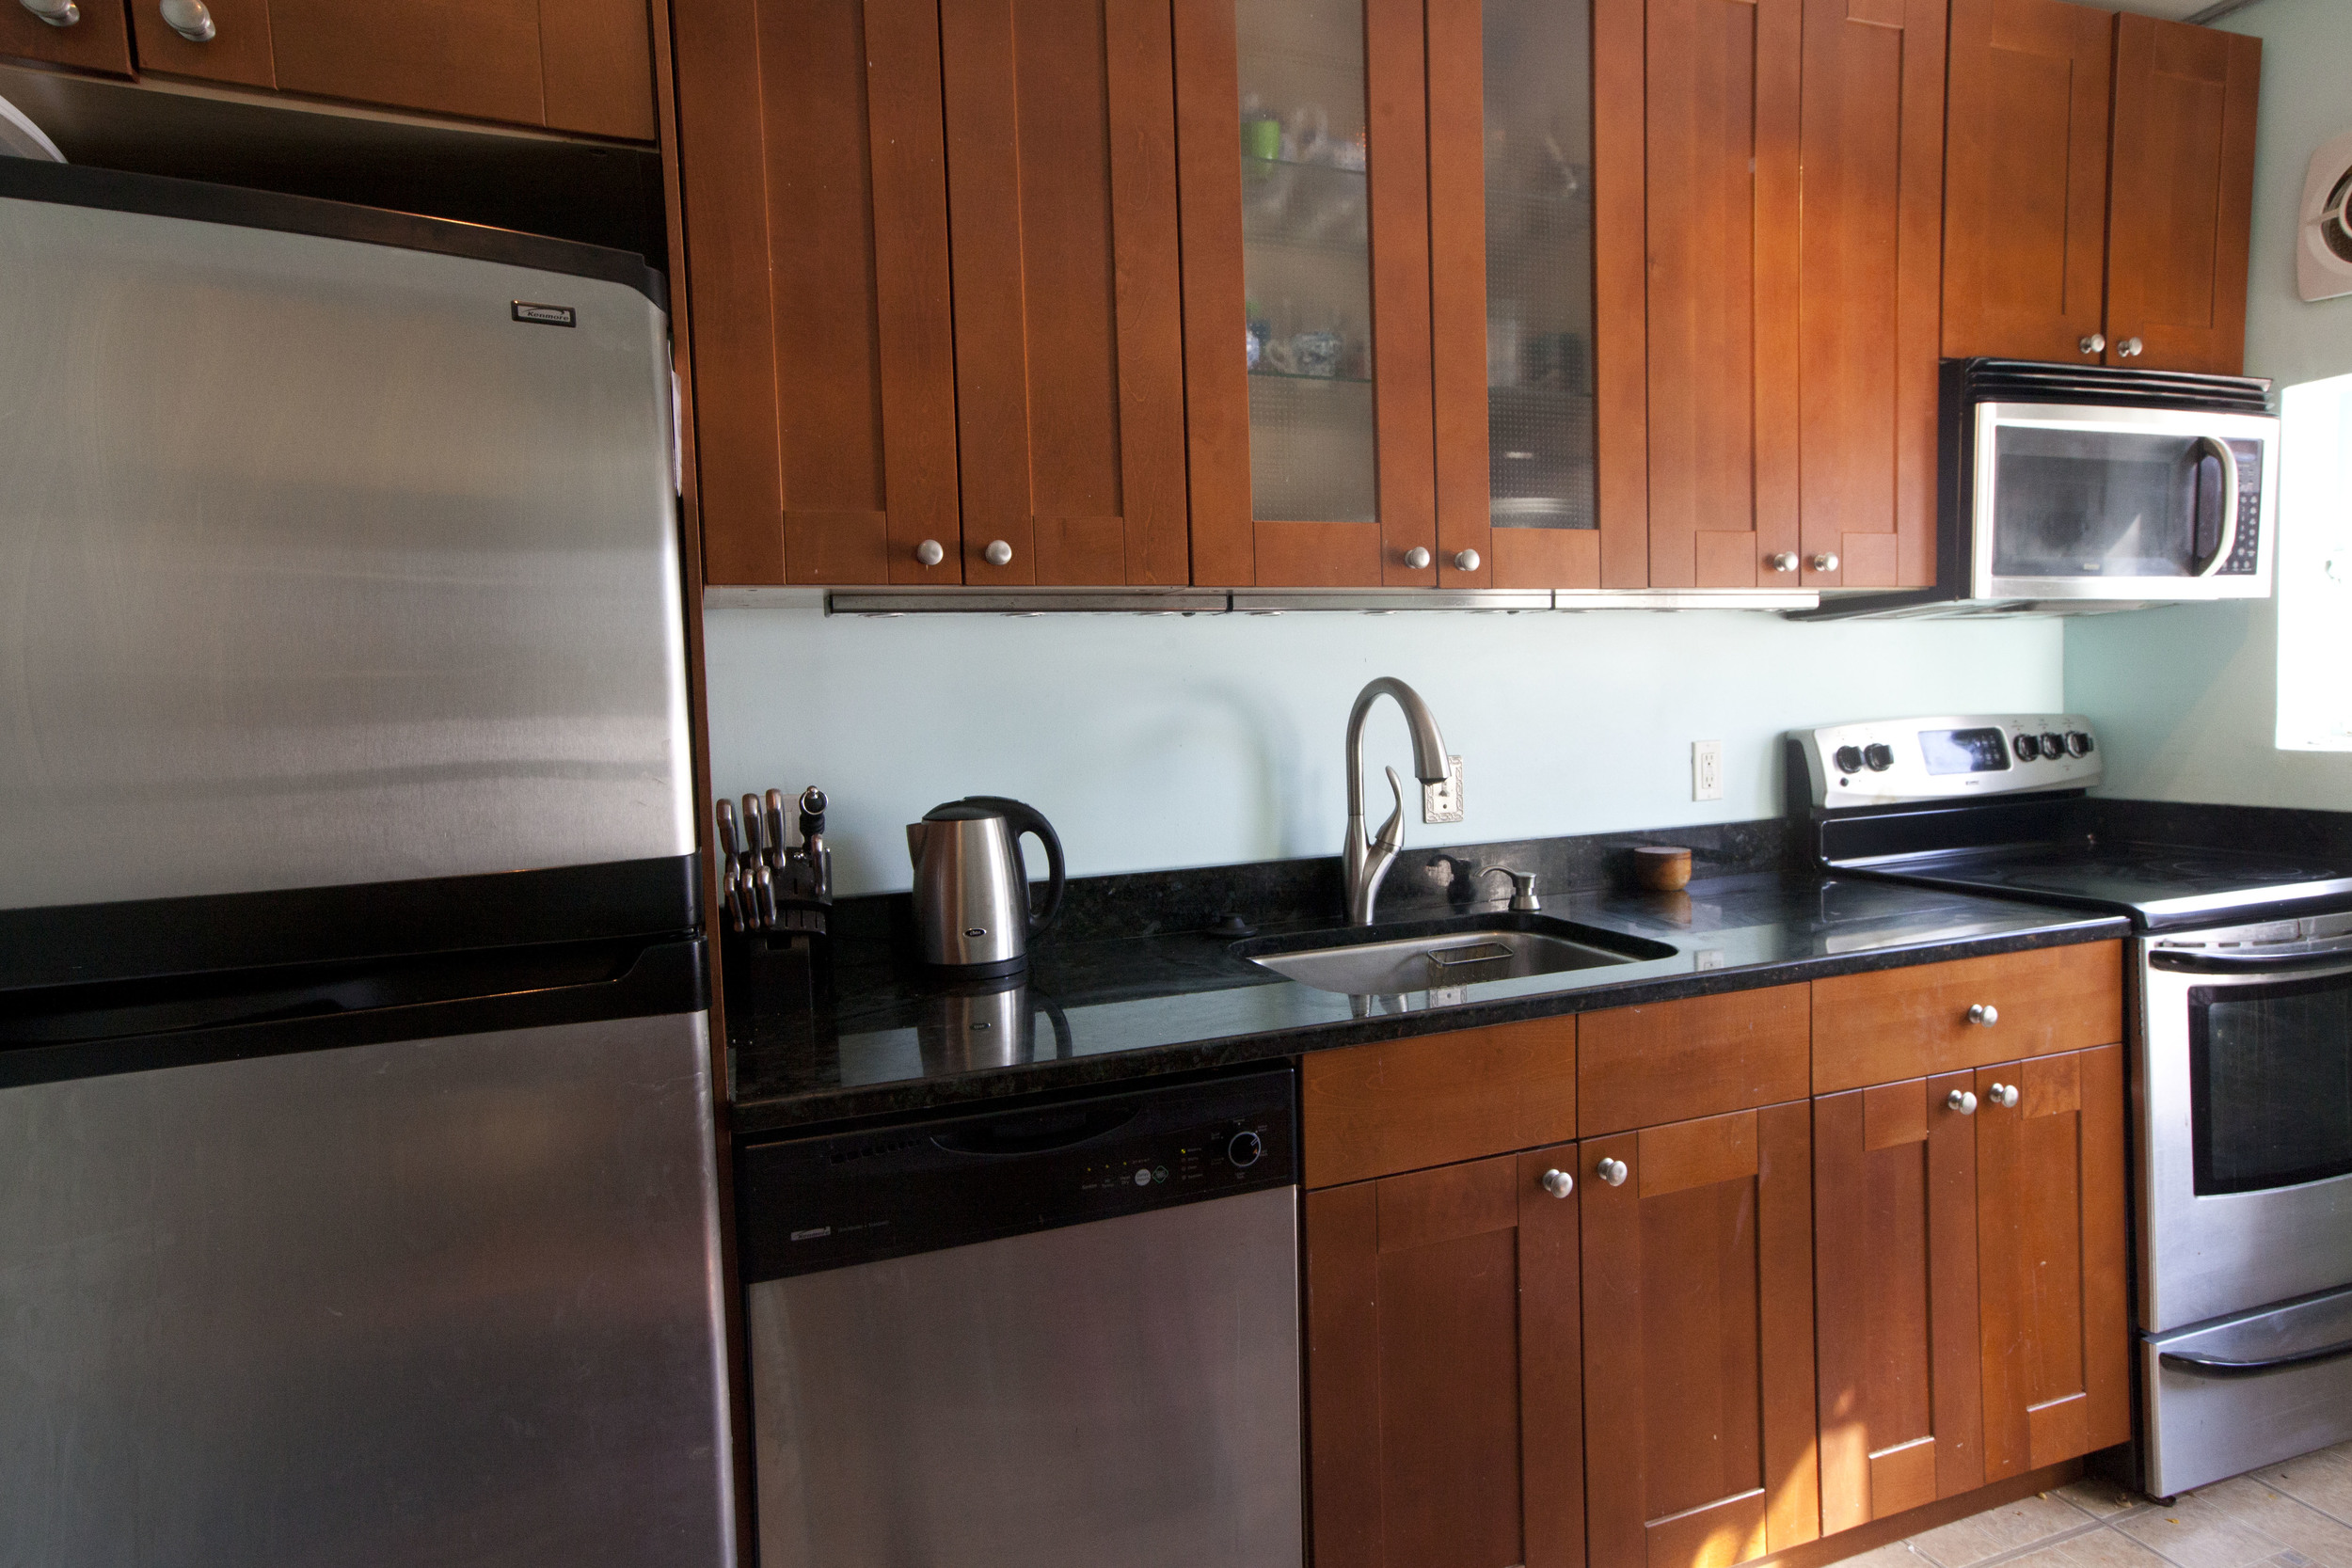 Kitchen has dark granite and full-sized stainless steel appliances.